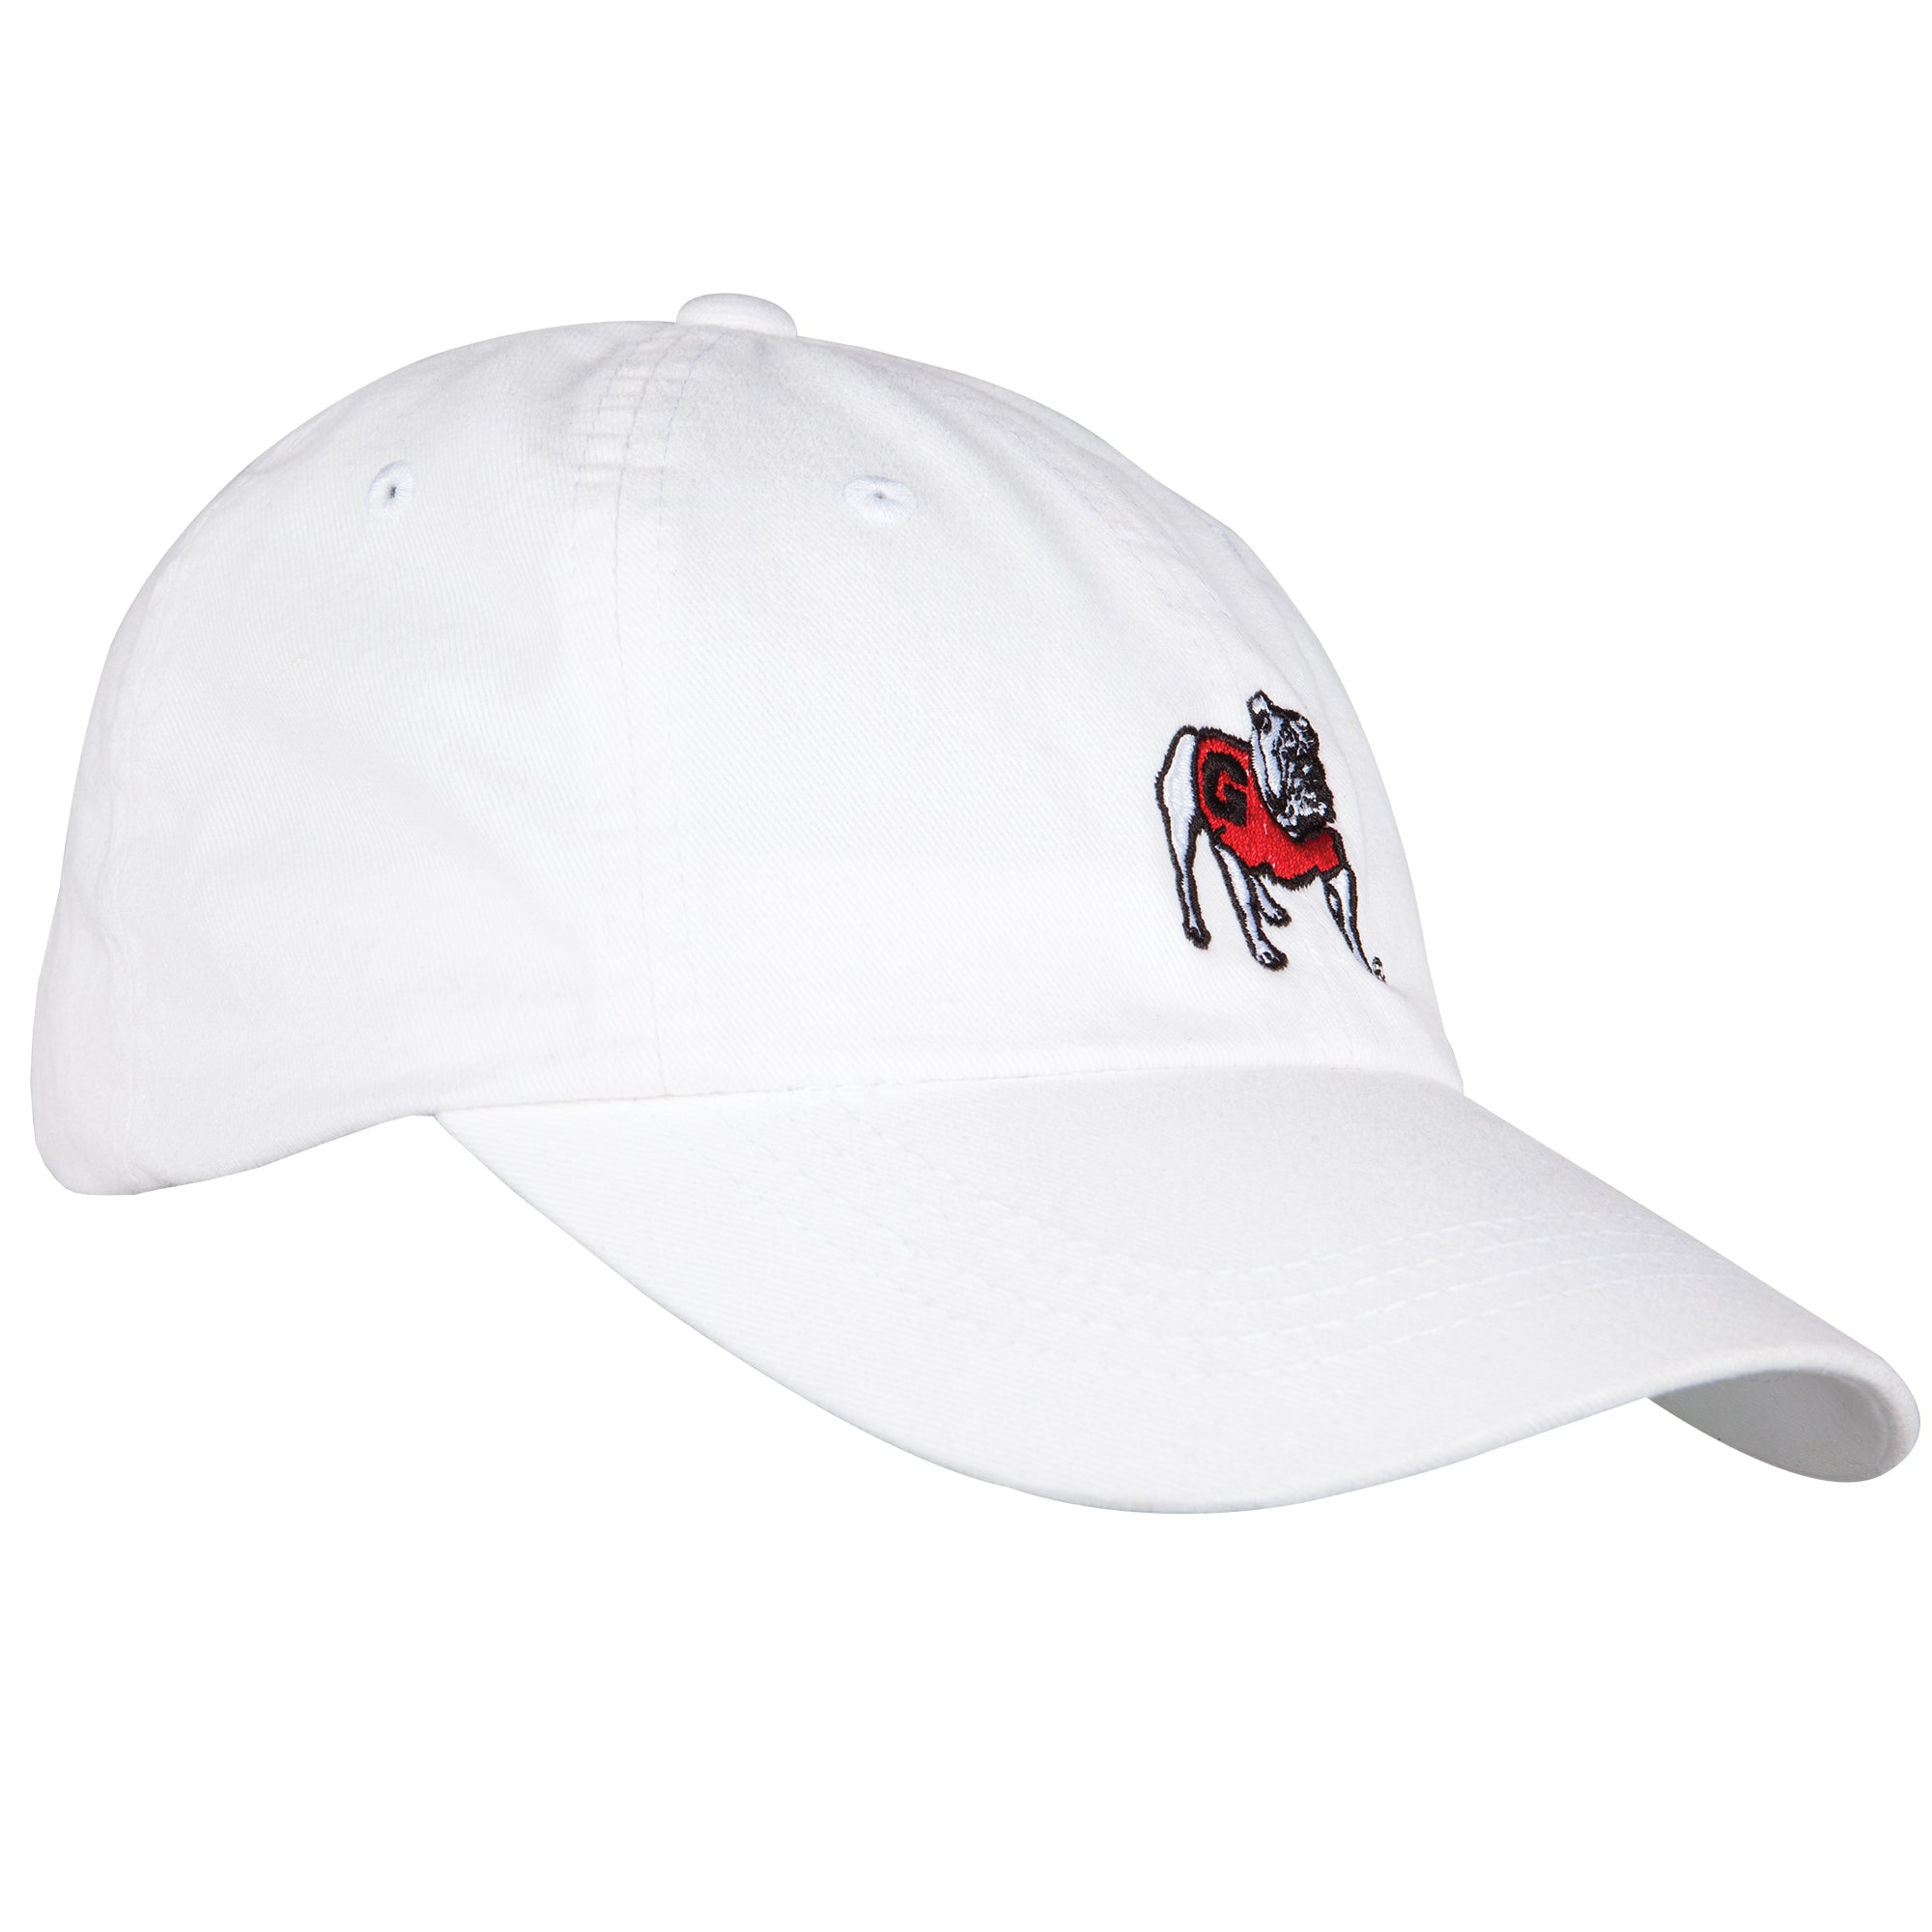 Standing Bulldog Cotton Hat - OnwardReserve